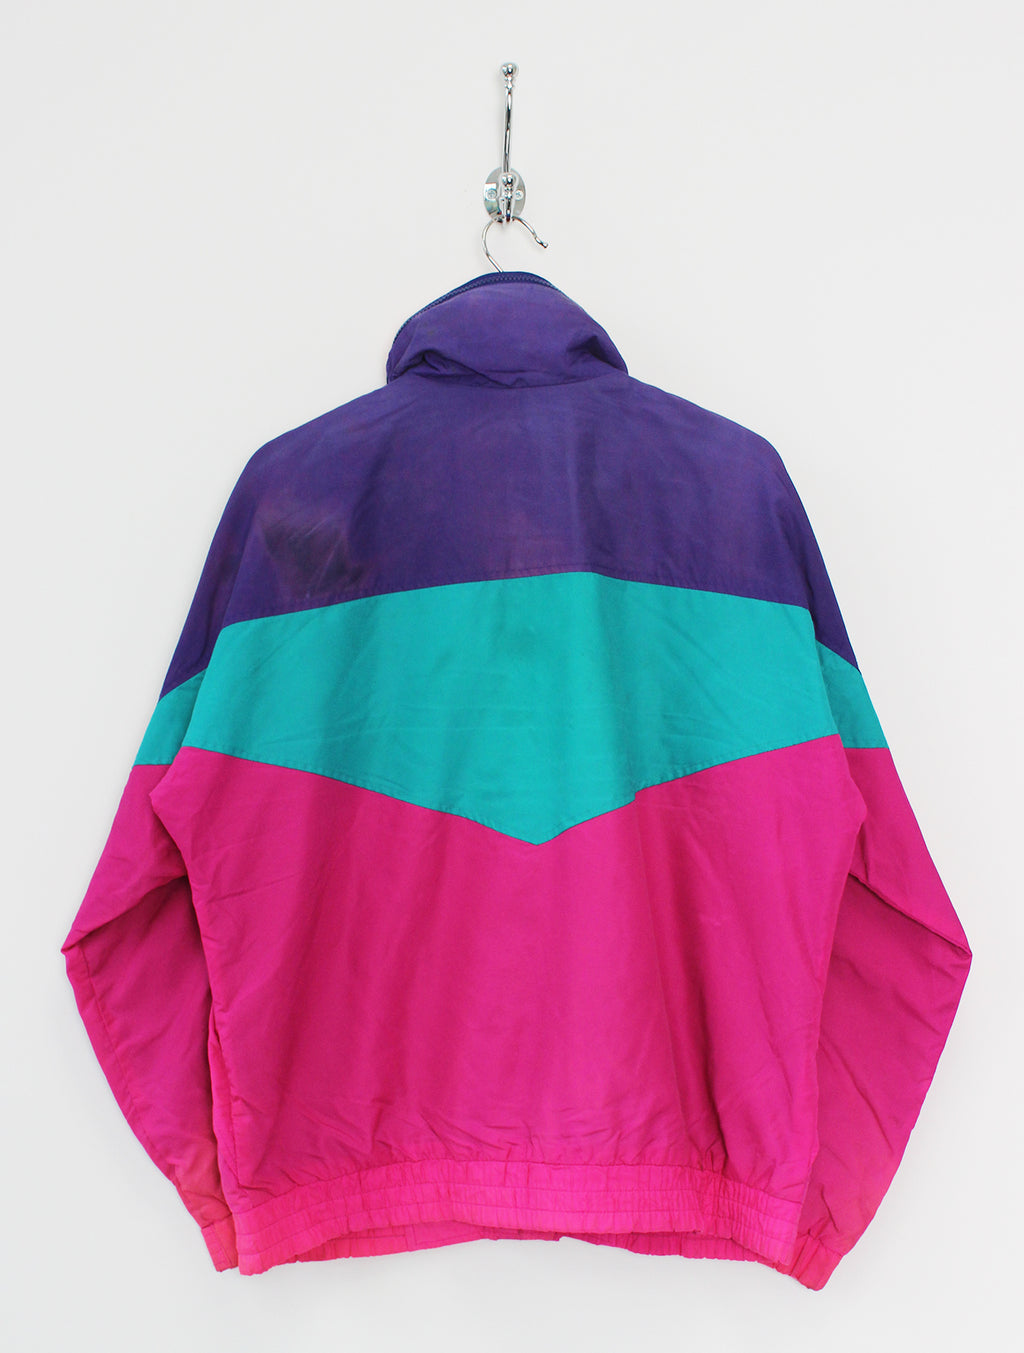 Women's Columbia Jacket (L)